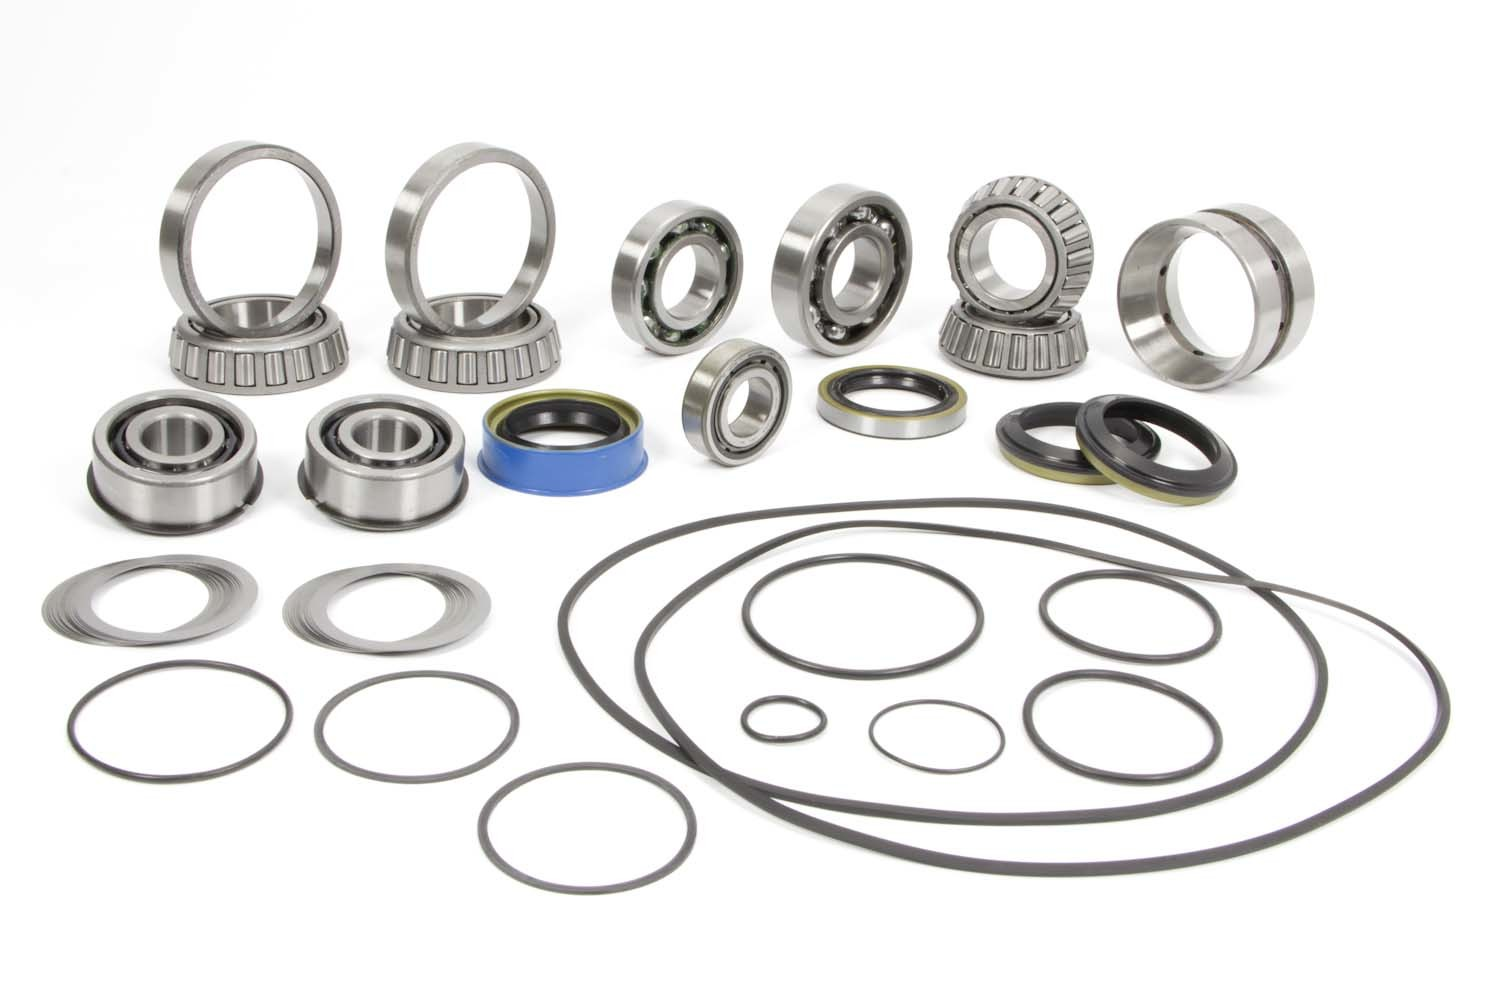 Winters 1209HD-02A Differential Rebuild Kit, Bearings, Seals, O-Rings, 10 in Sprint Center, 4 or 6 Rib Bell / Heavy Duty Cover, Kit